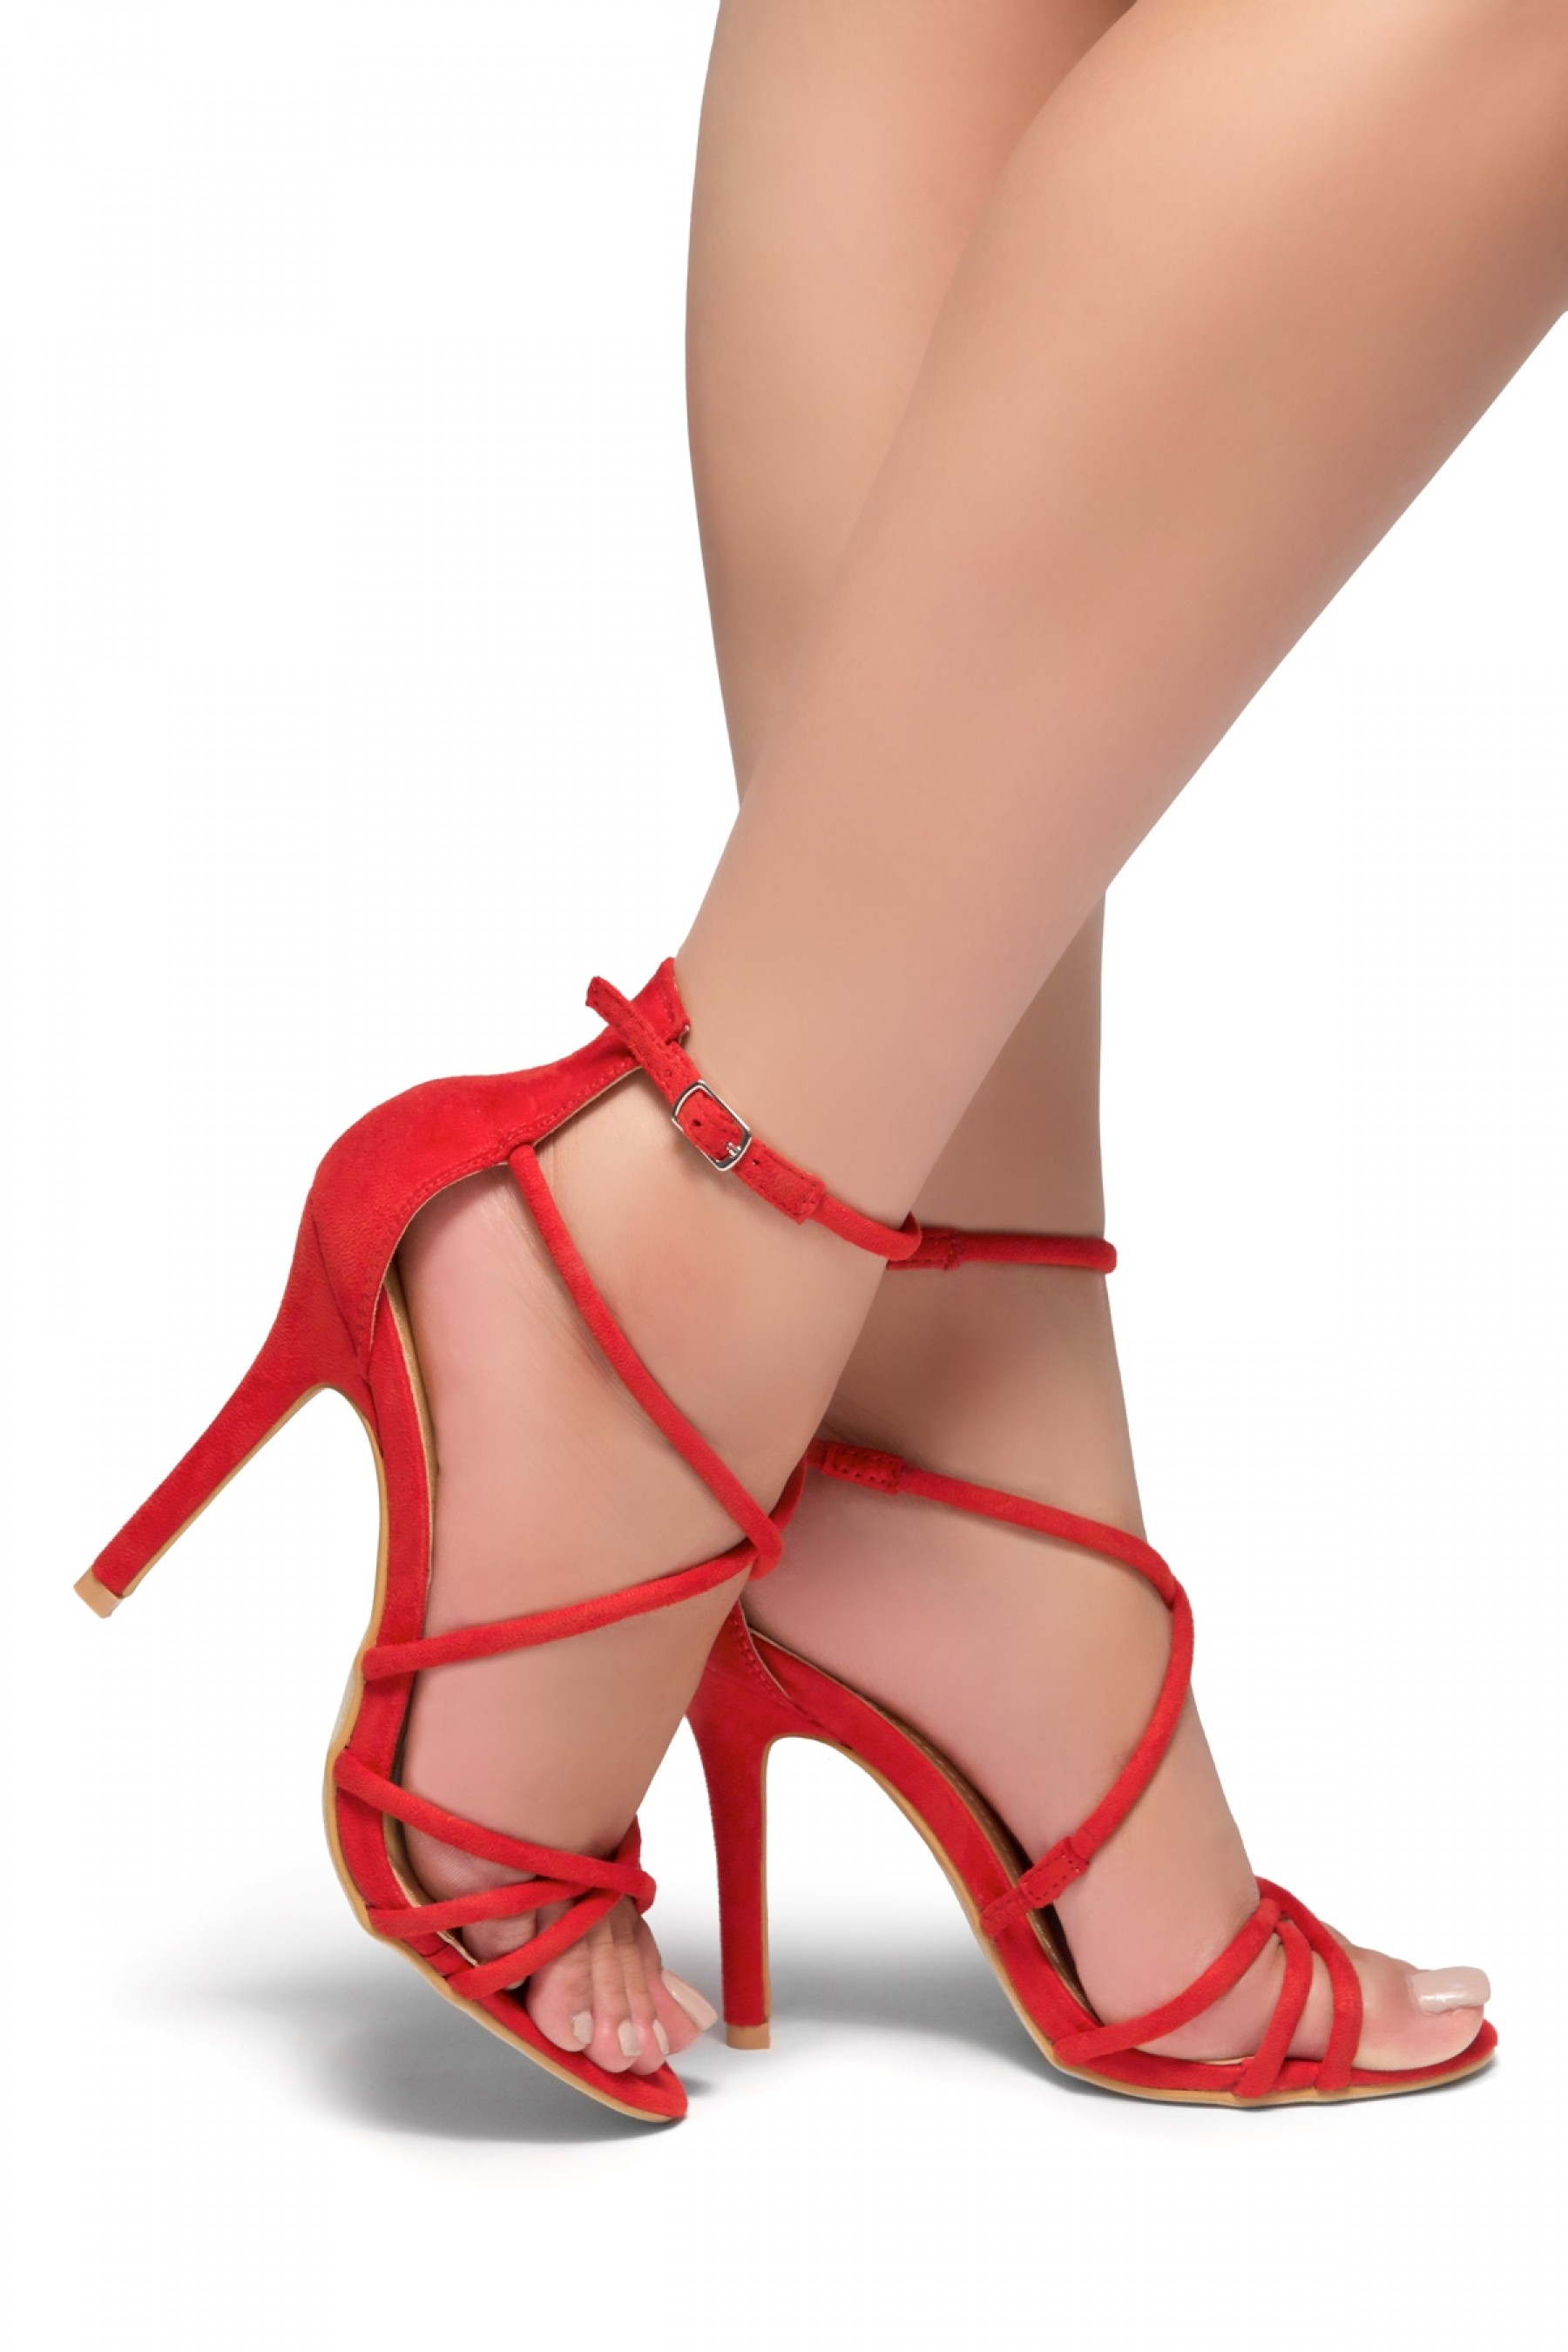 HerStyle Villarosa-Stiletto heel, gladiator construction, ankle strap (Red)